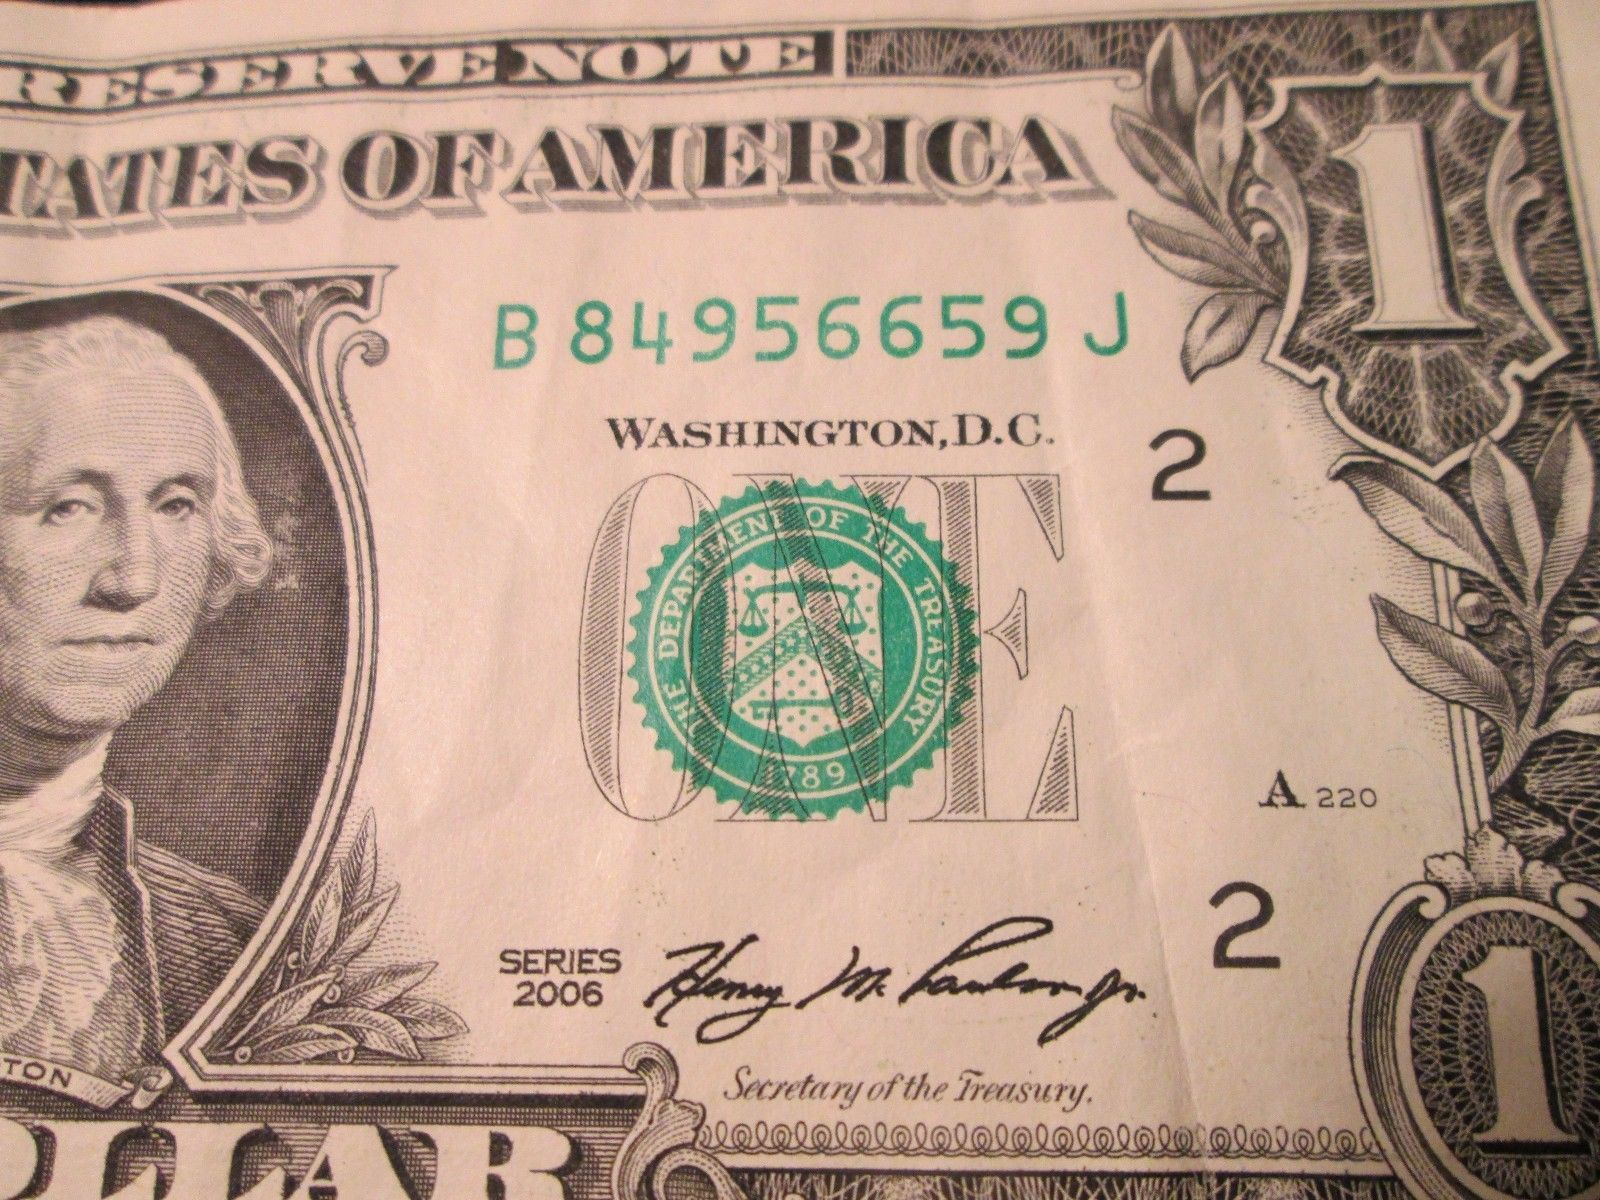 2006 Federal Reserve Bank of NY Still Crispy Note Last 6 Numbers RADAR! 956-659!